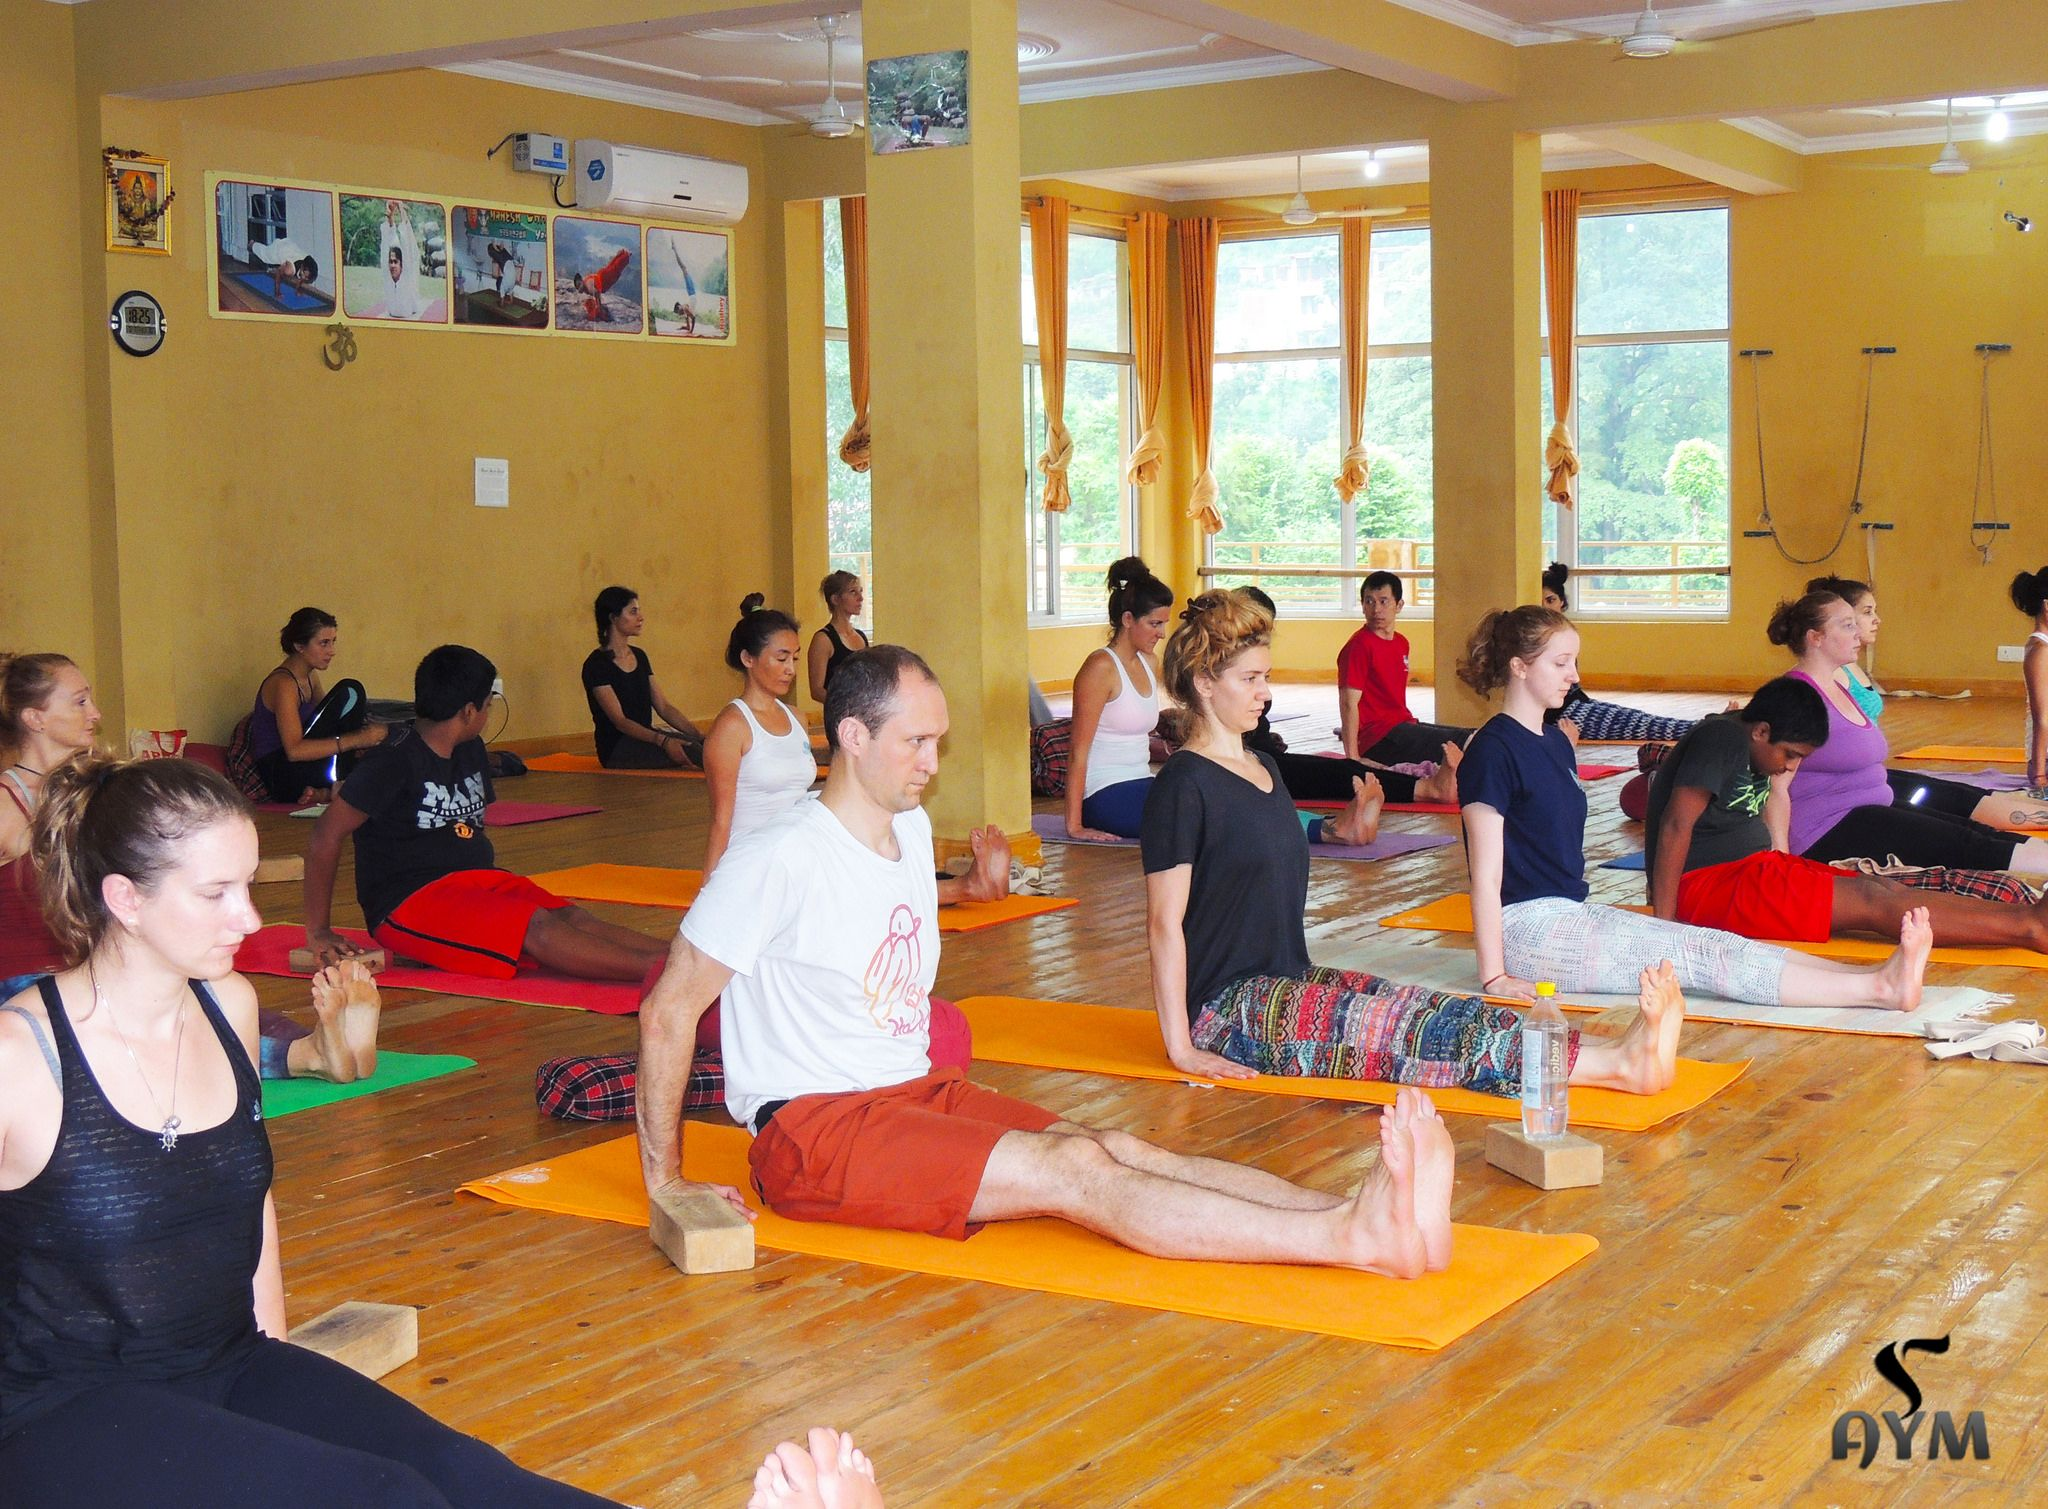 "https://flic.kr/p/JMYT4C | aym yoga school in rishikesh | ""Yoga is an art form in which the mind, body and soul are all connected and act as one"" Yoga Alliance certified 200, 300 and 500 hours hatha and ashtanga yoga teacher training in India at AYM Yoga School Rishikesh - goo.gl/UuaJjW"